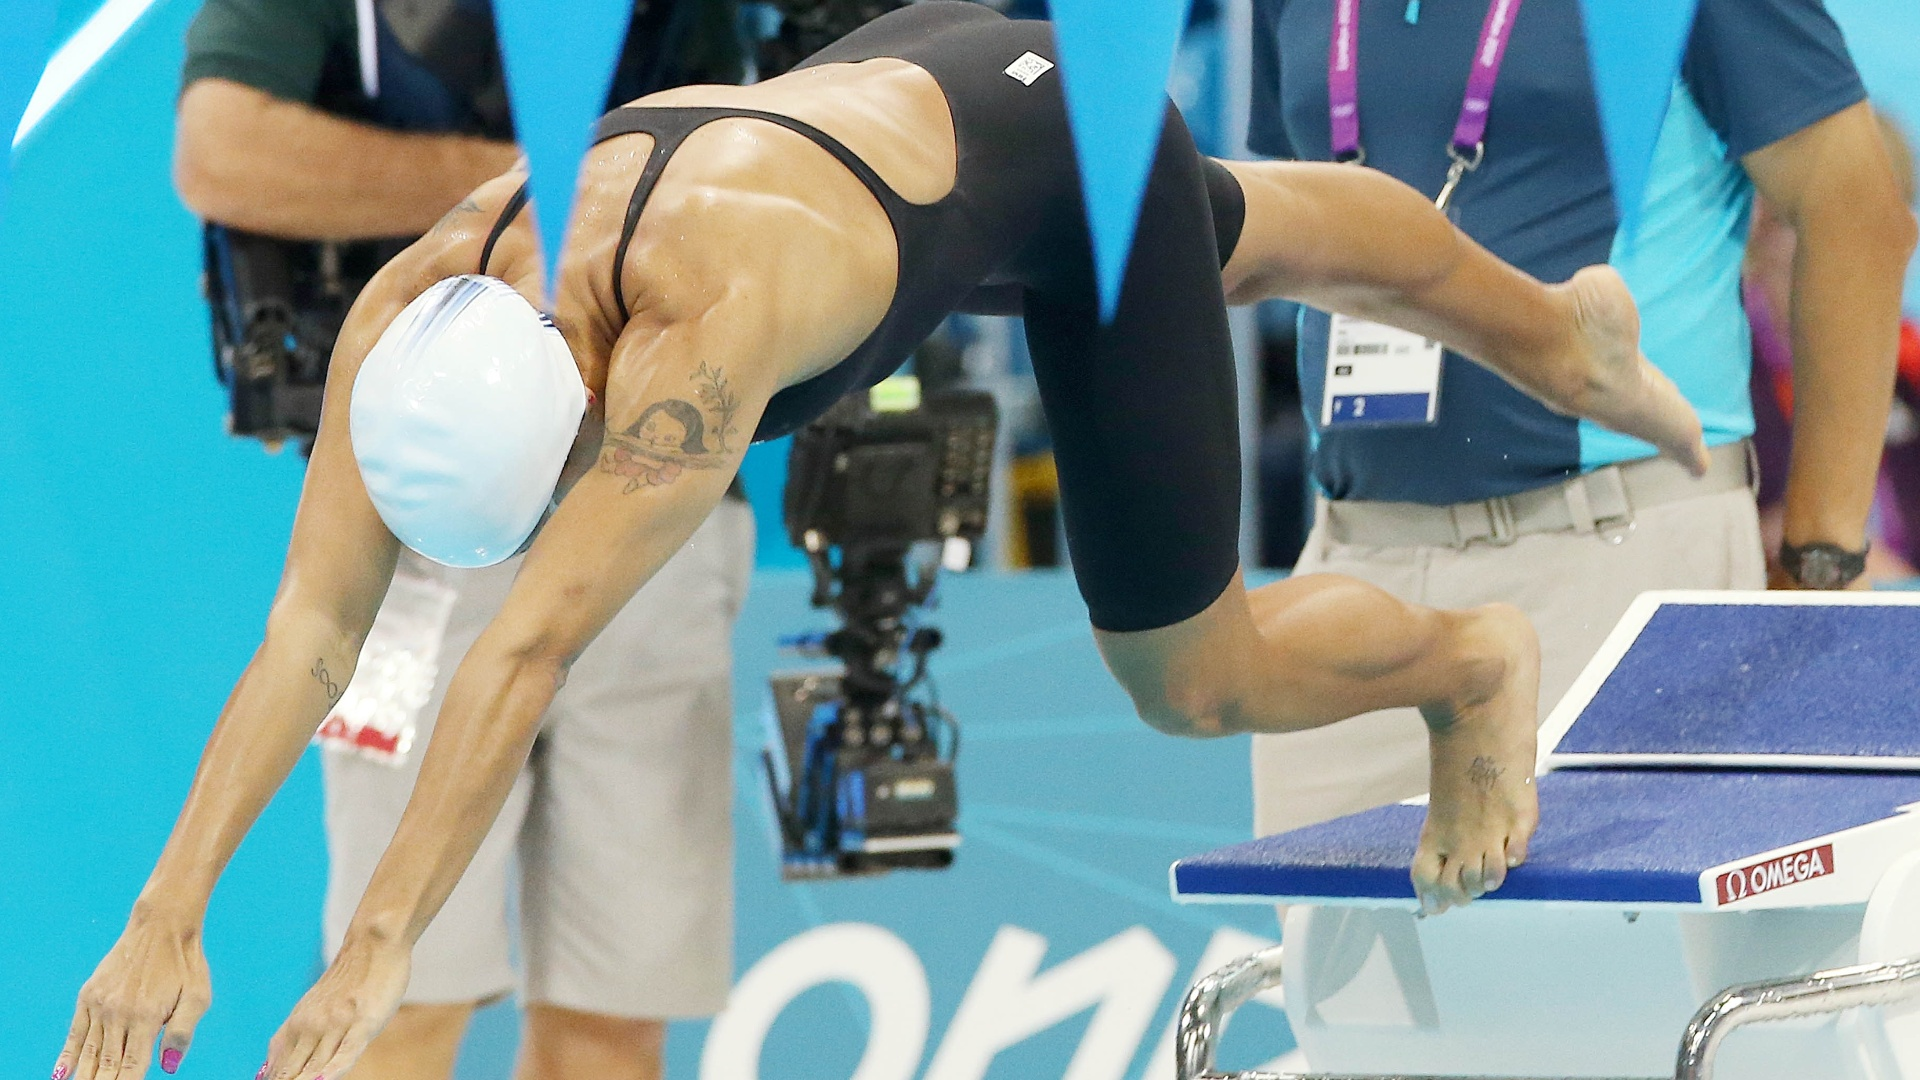 Joanna Maranho competiu nos 200 m medley nesta segunda-feira aps se recuperar do acidente que a deixou fora dos 400 m medley no sbado